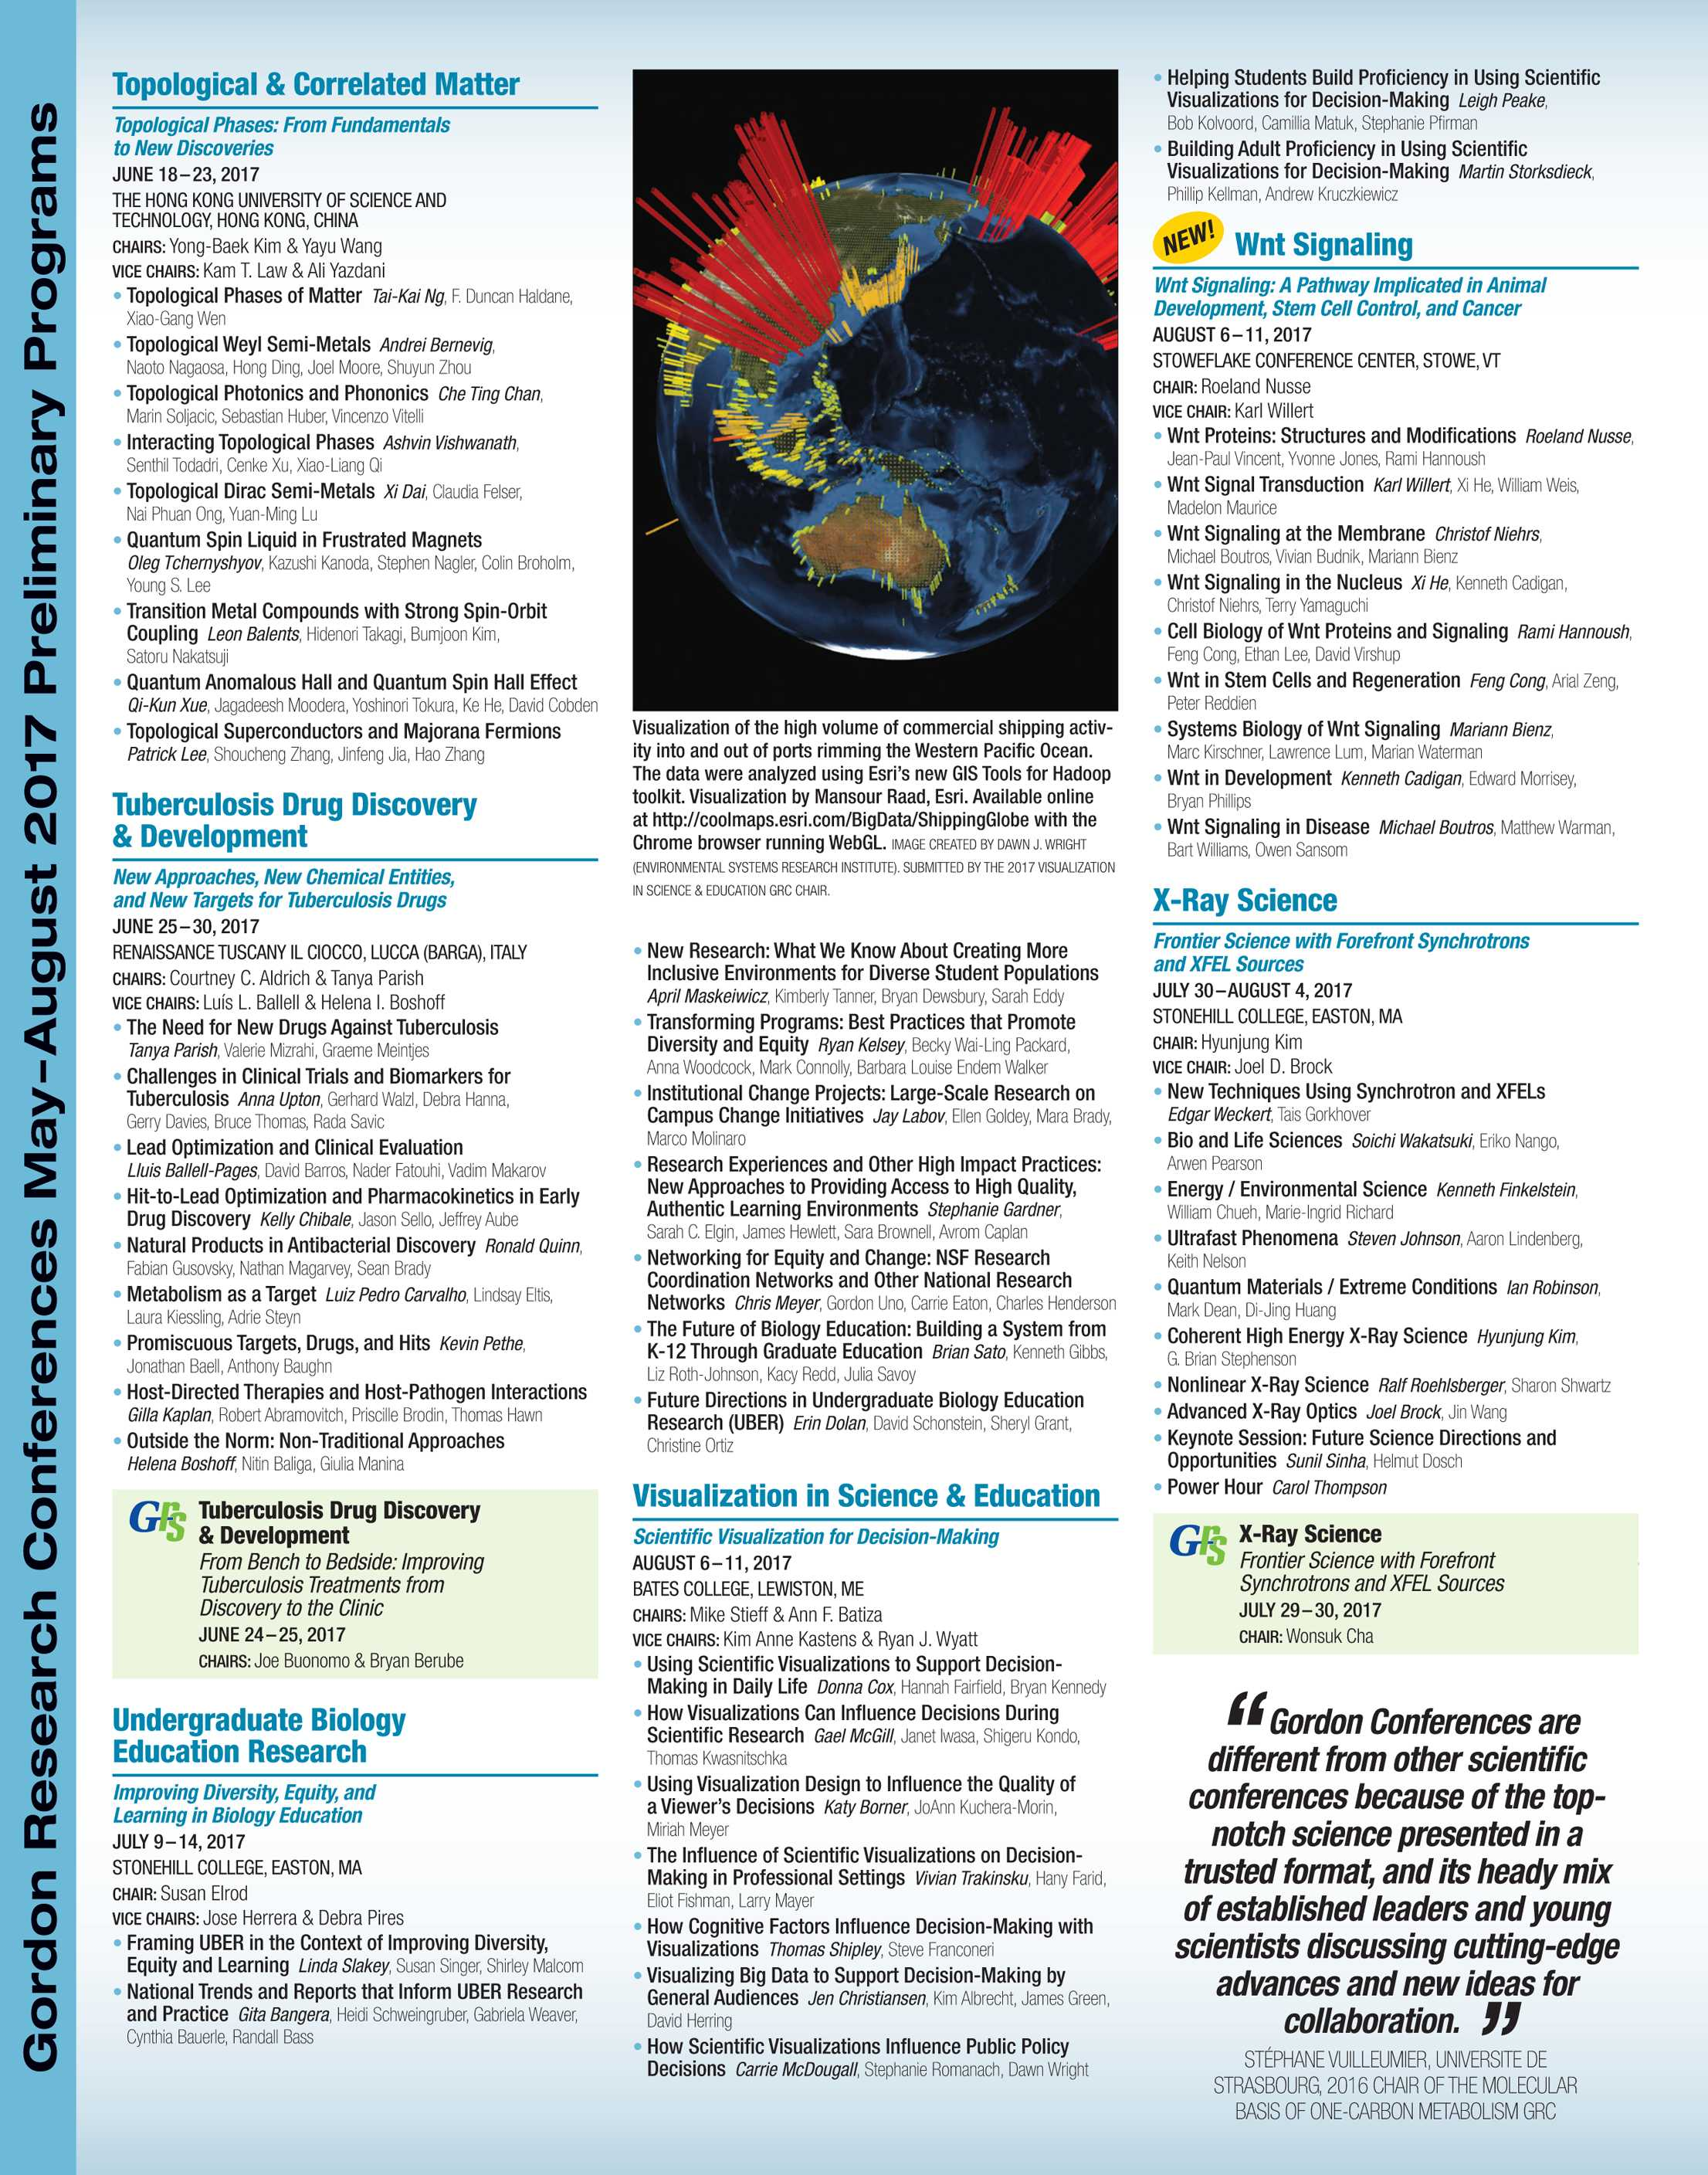 Anette Michel H science magazine - february 24, 2017 - page 870